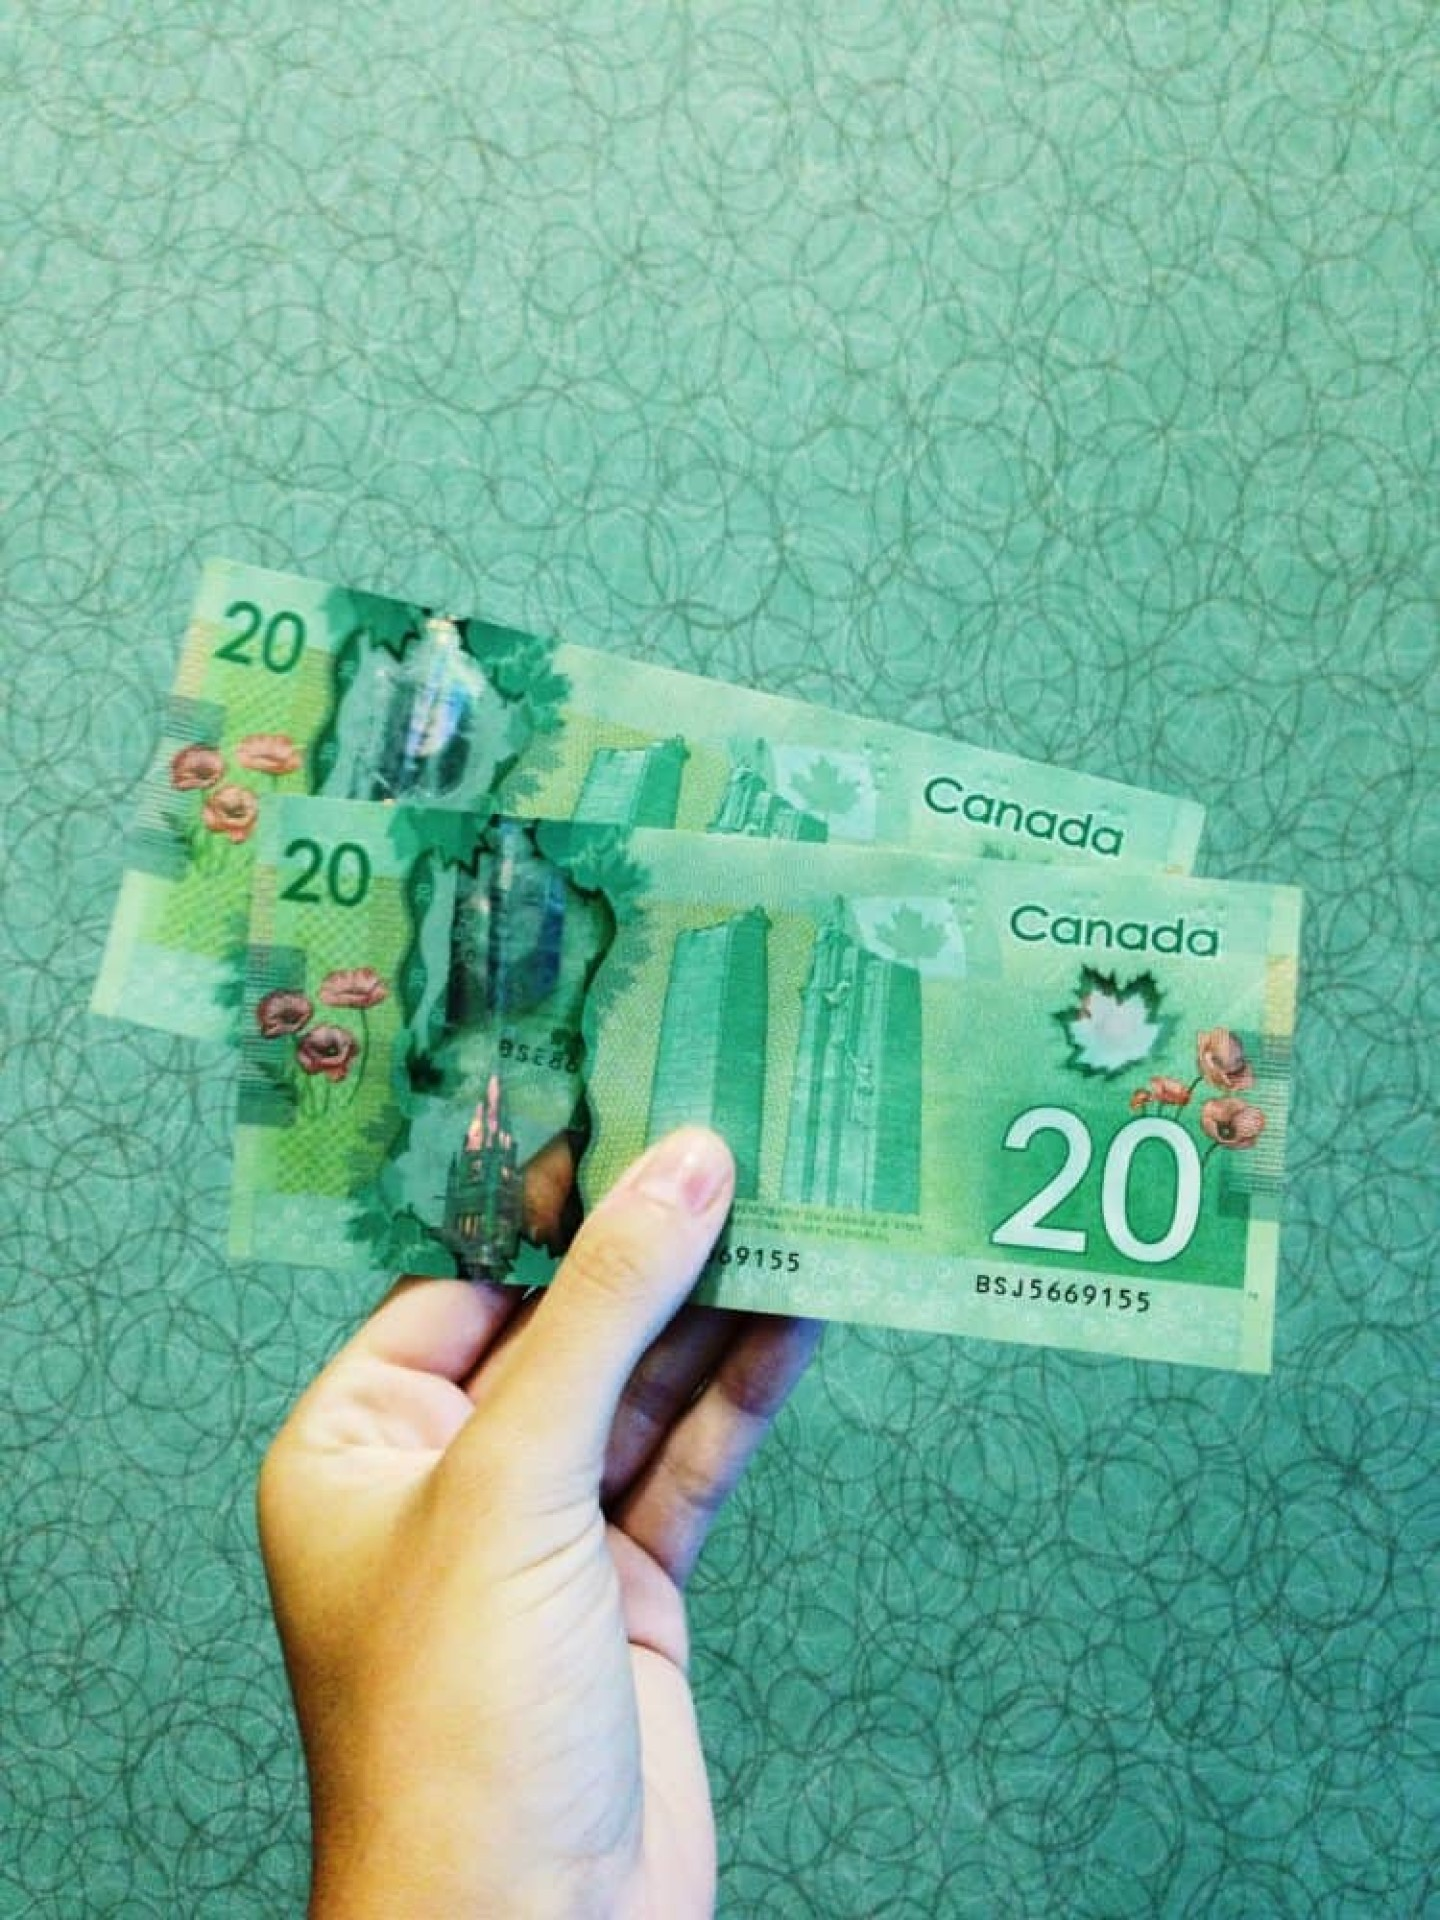 Billets de 20 dollars canadiens